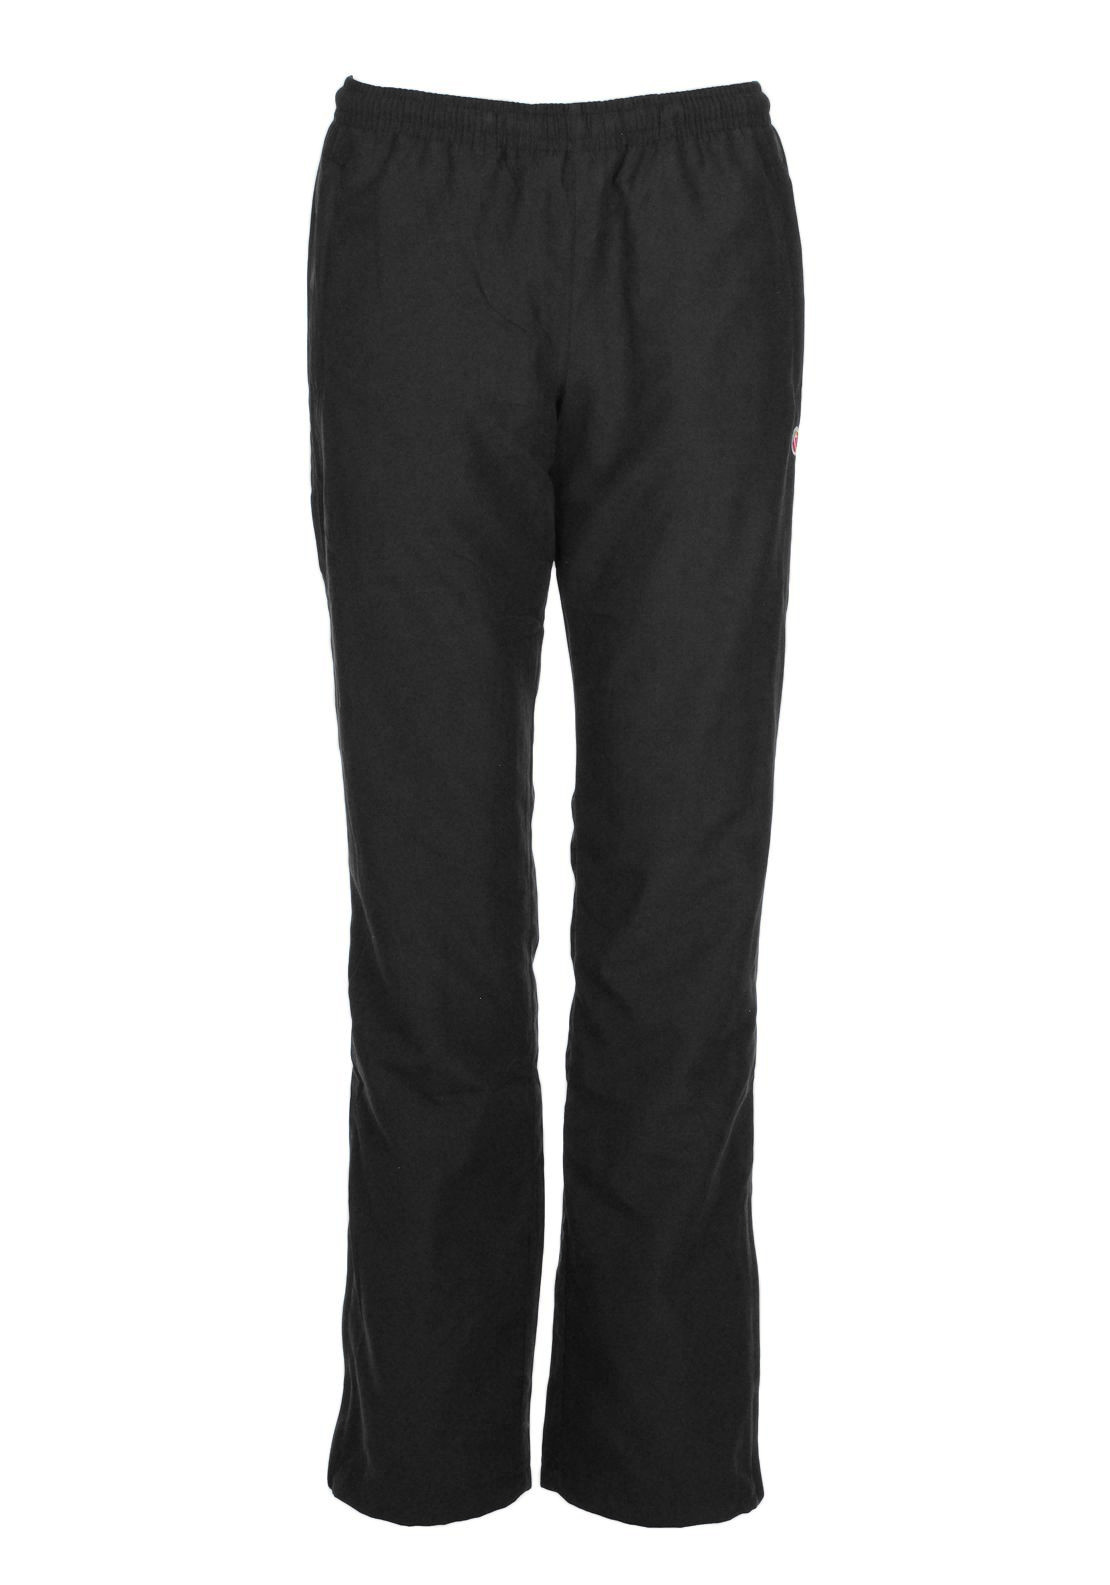 Ellessential Ladies Cosephino Pant Long Leg, Black